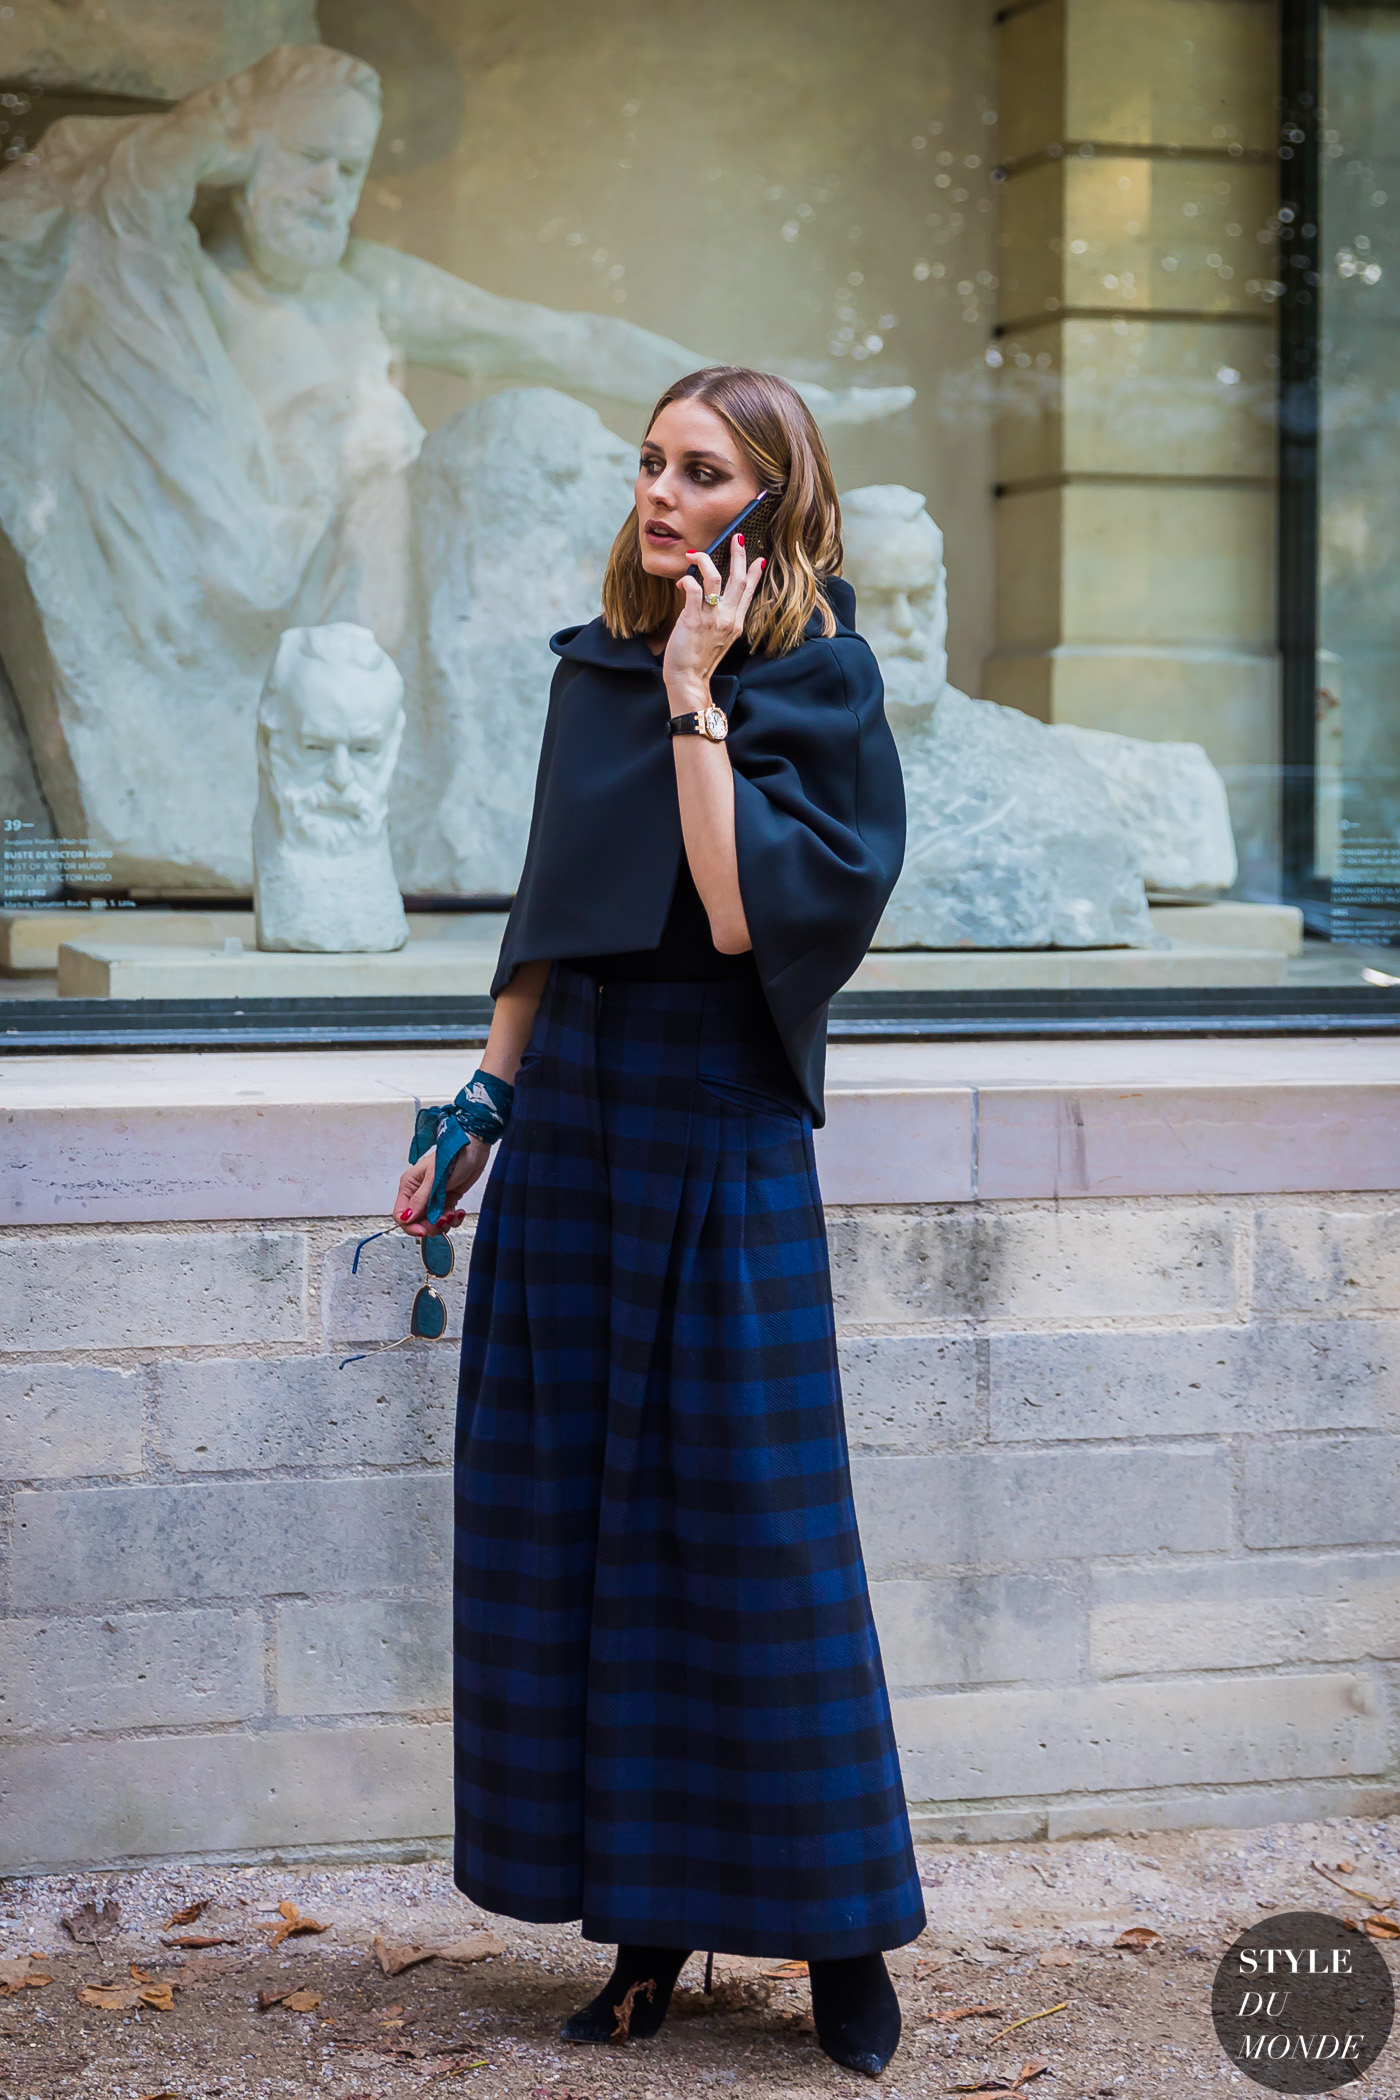 Olivia Palermo by STYLEDUMONDE Street Style Fashion Photography_48A4173